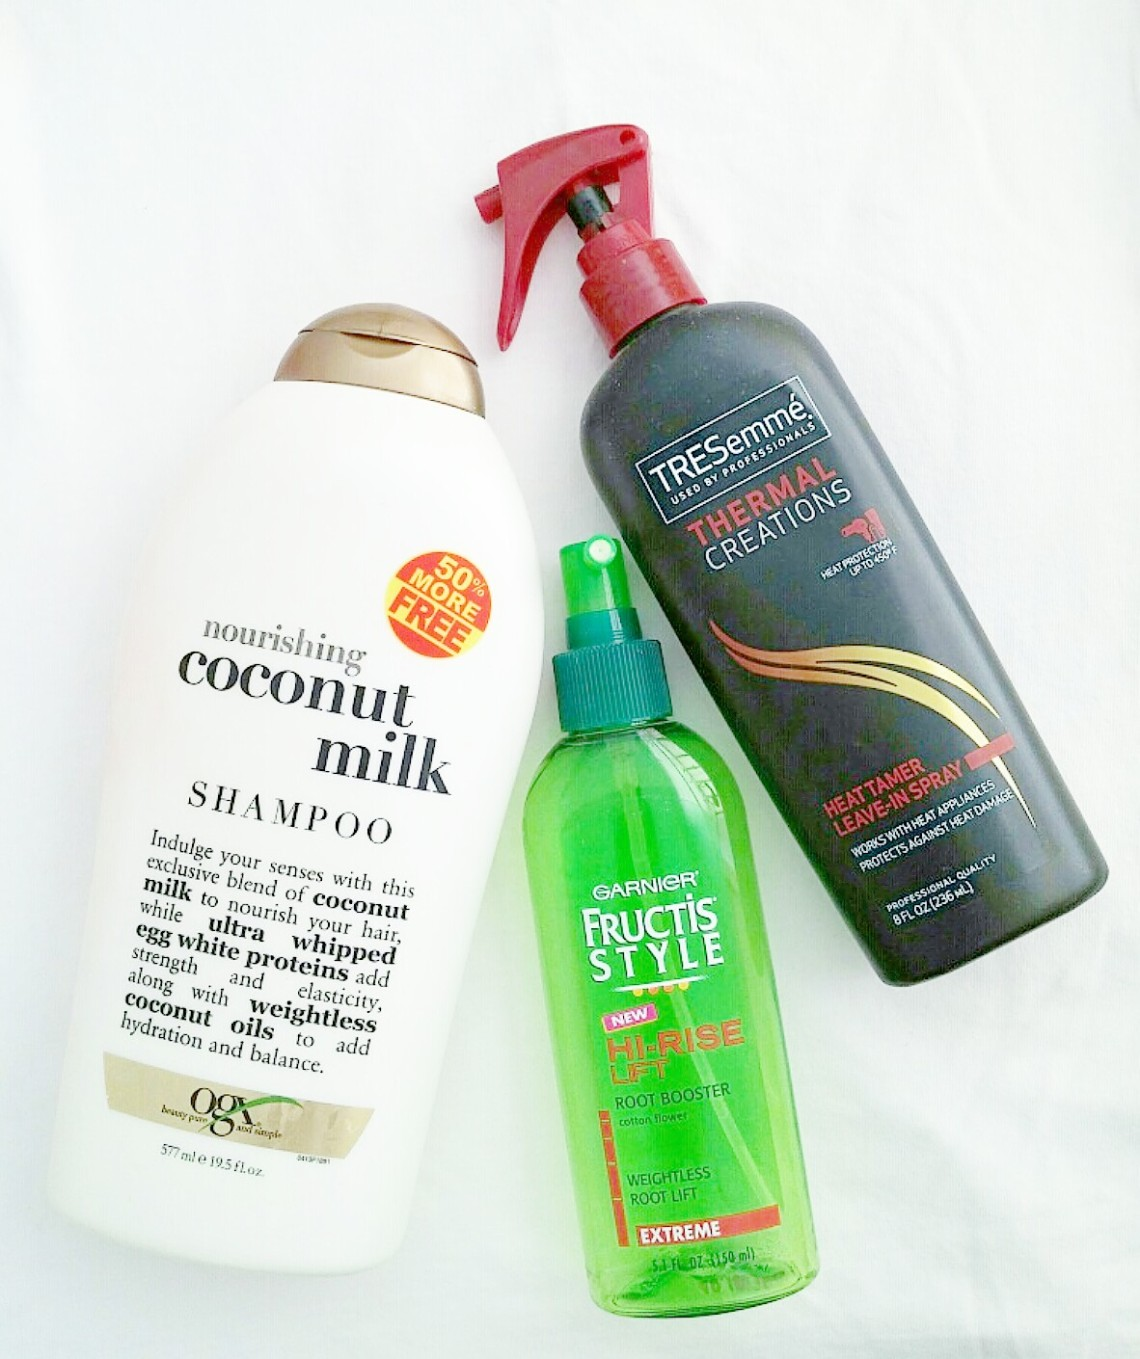 OGX Shampoo, Tresemme Heat Protectant, and Fructis Root Booster